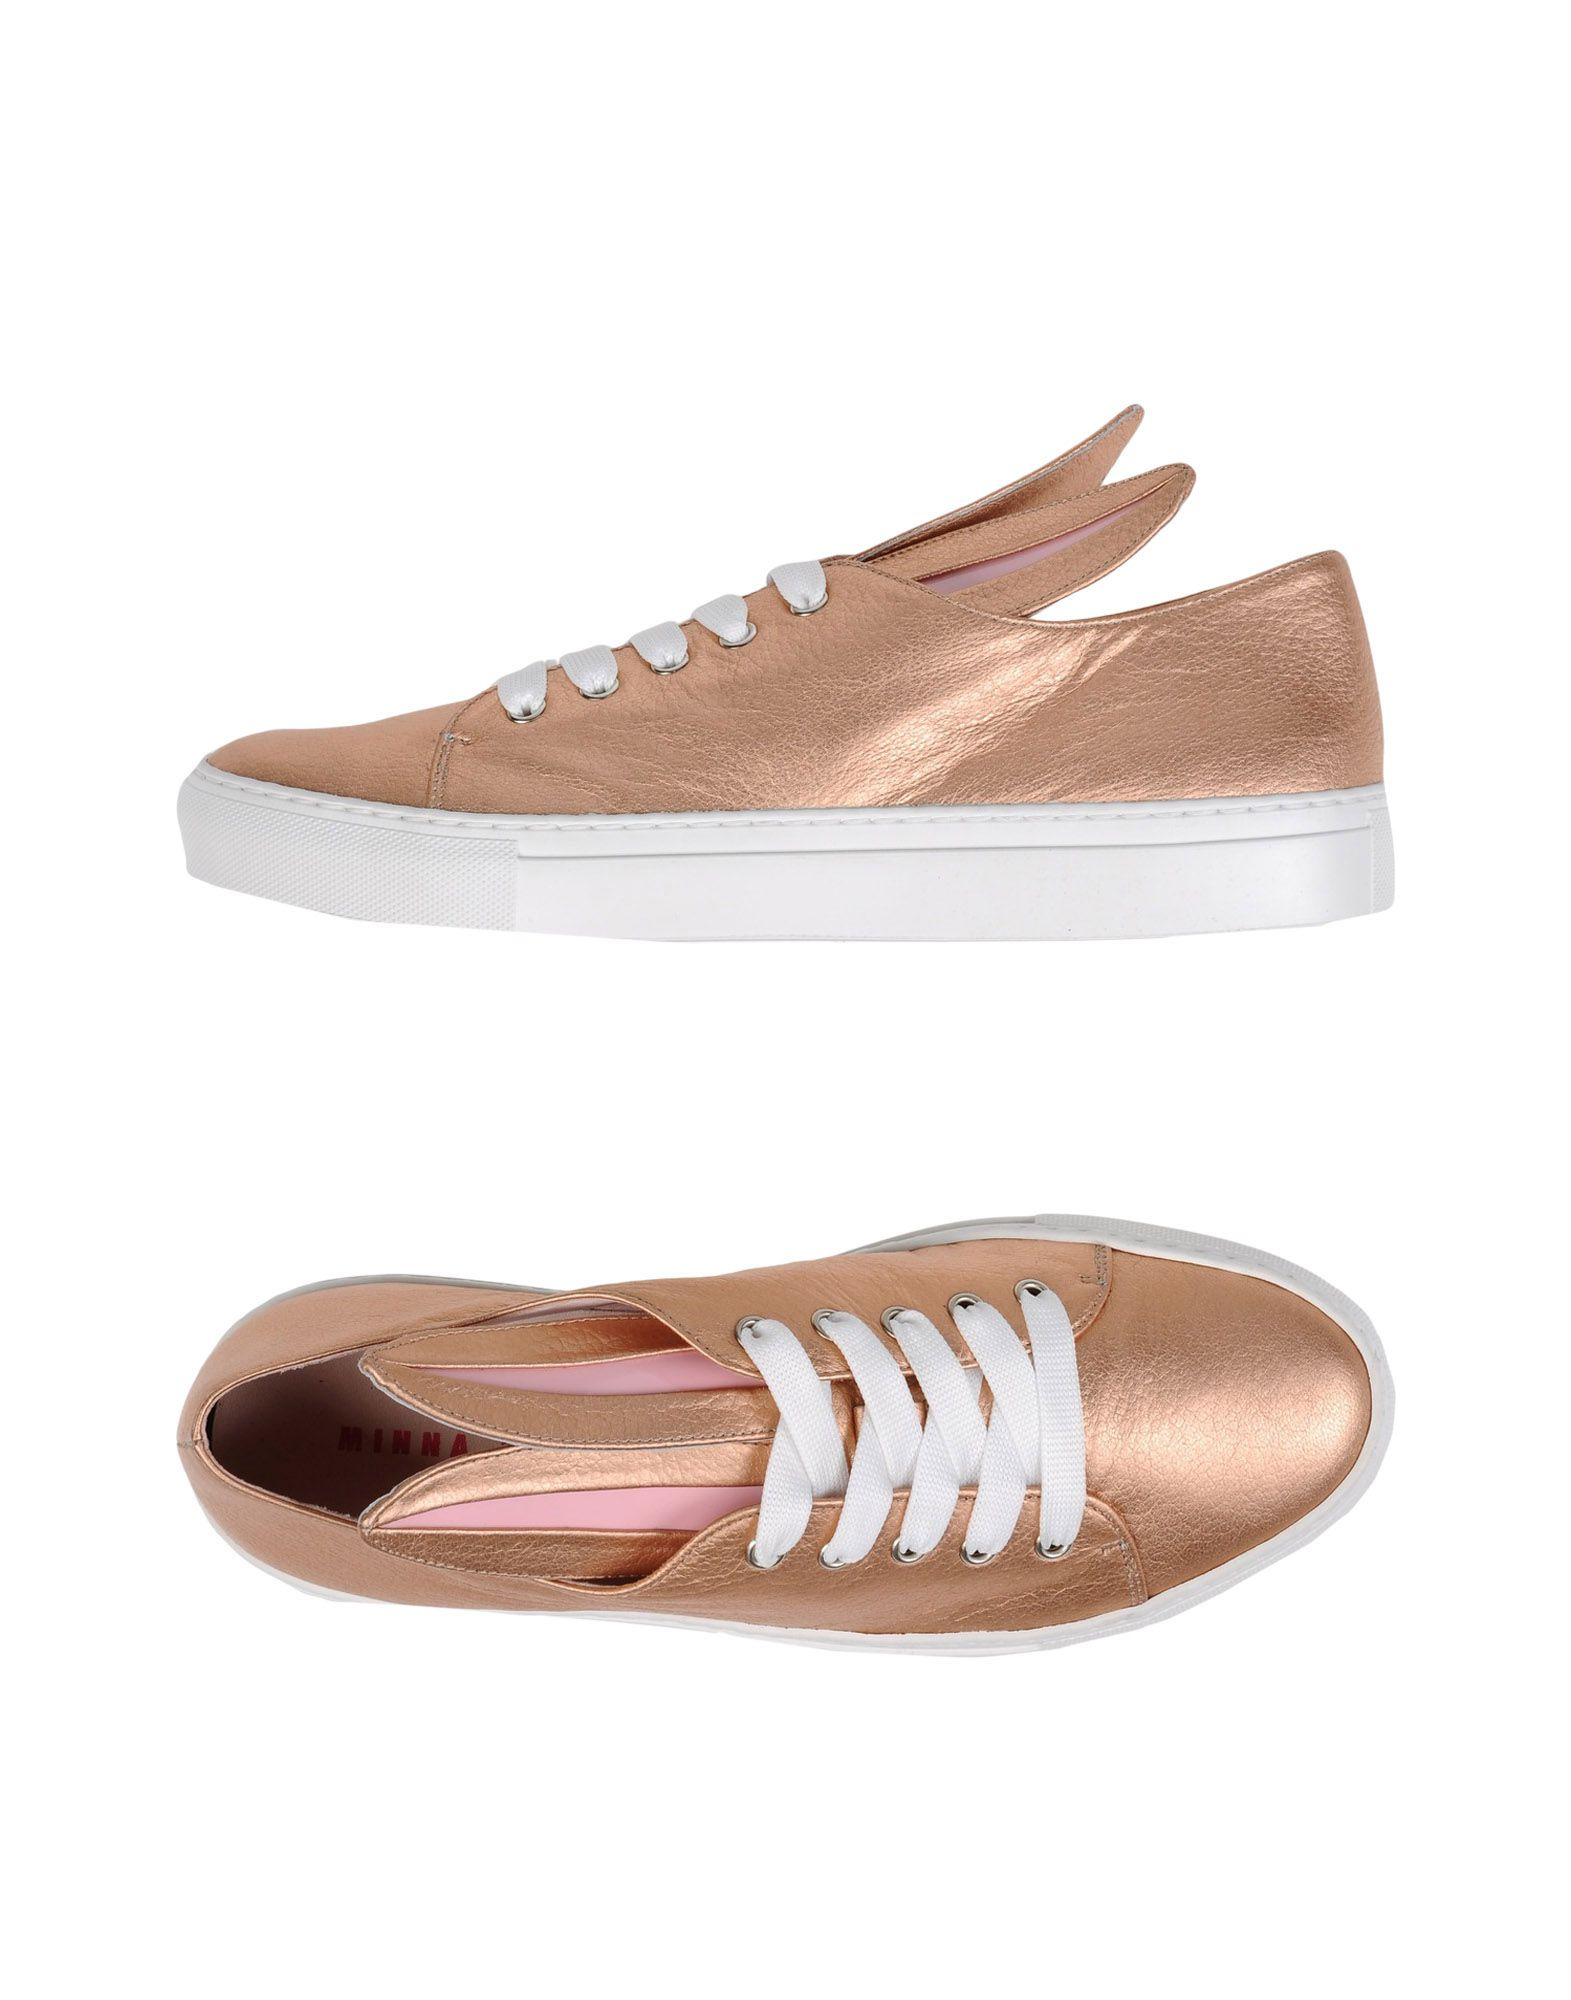 Sneakers Minna Parikka All Ears Low Top Sneakers With Bunny Ears - Femme - Sneakers Minna Parikka sur